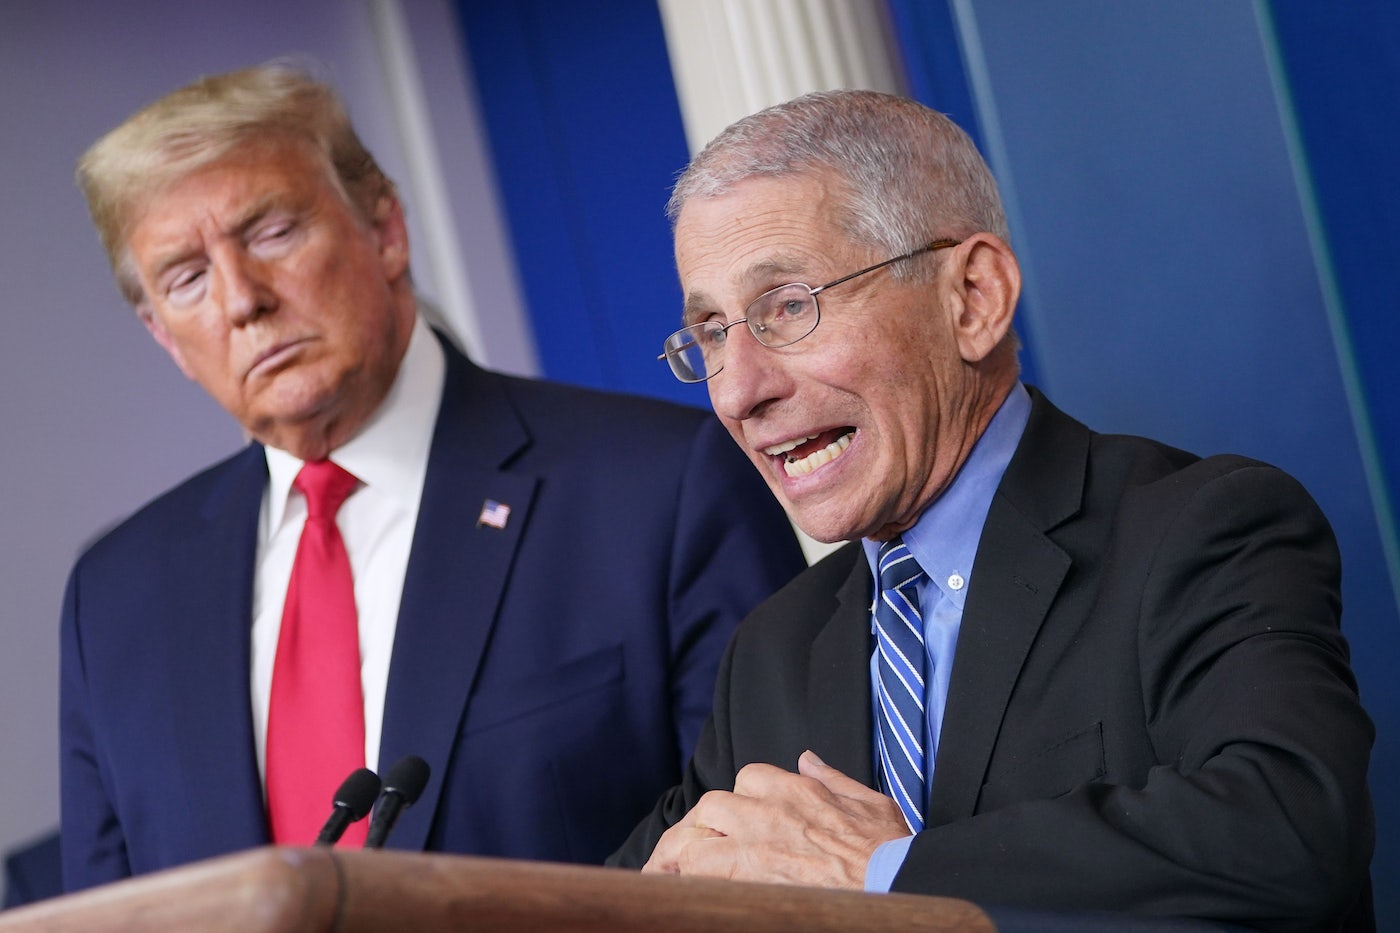 President Trump watches Dr. Anthony Fauci during a briefing on coronavirus.